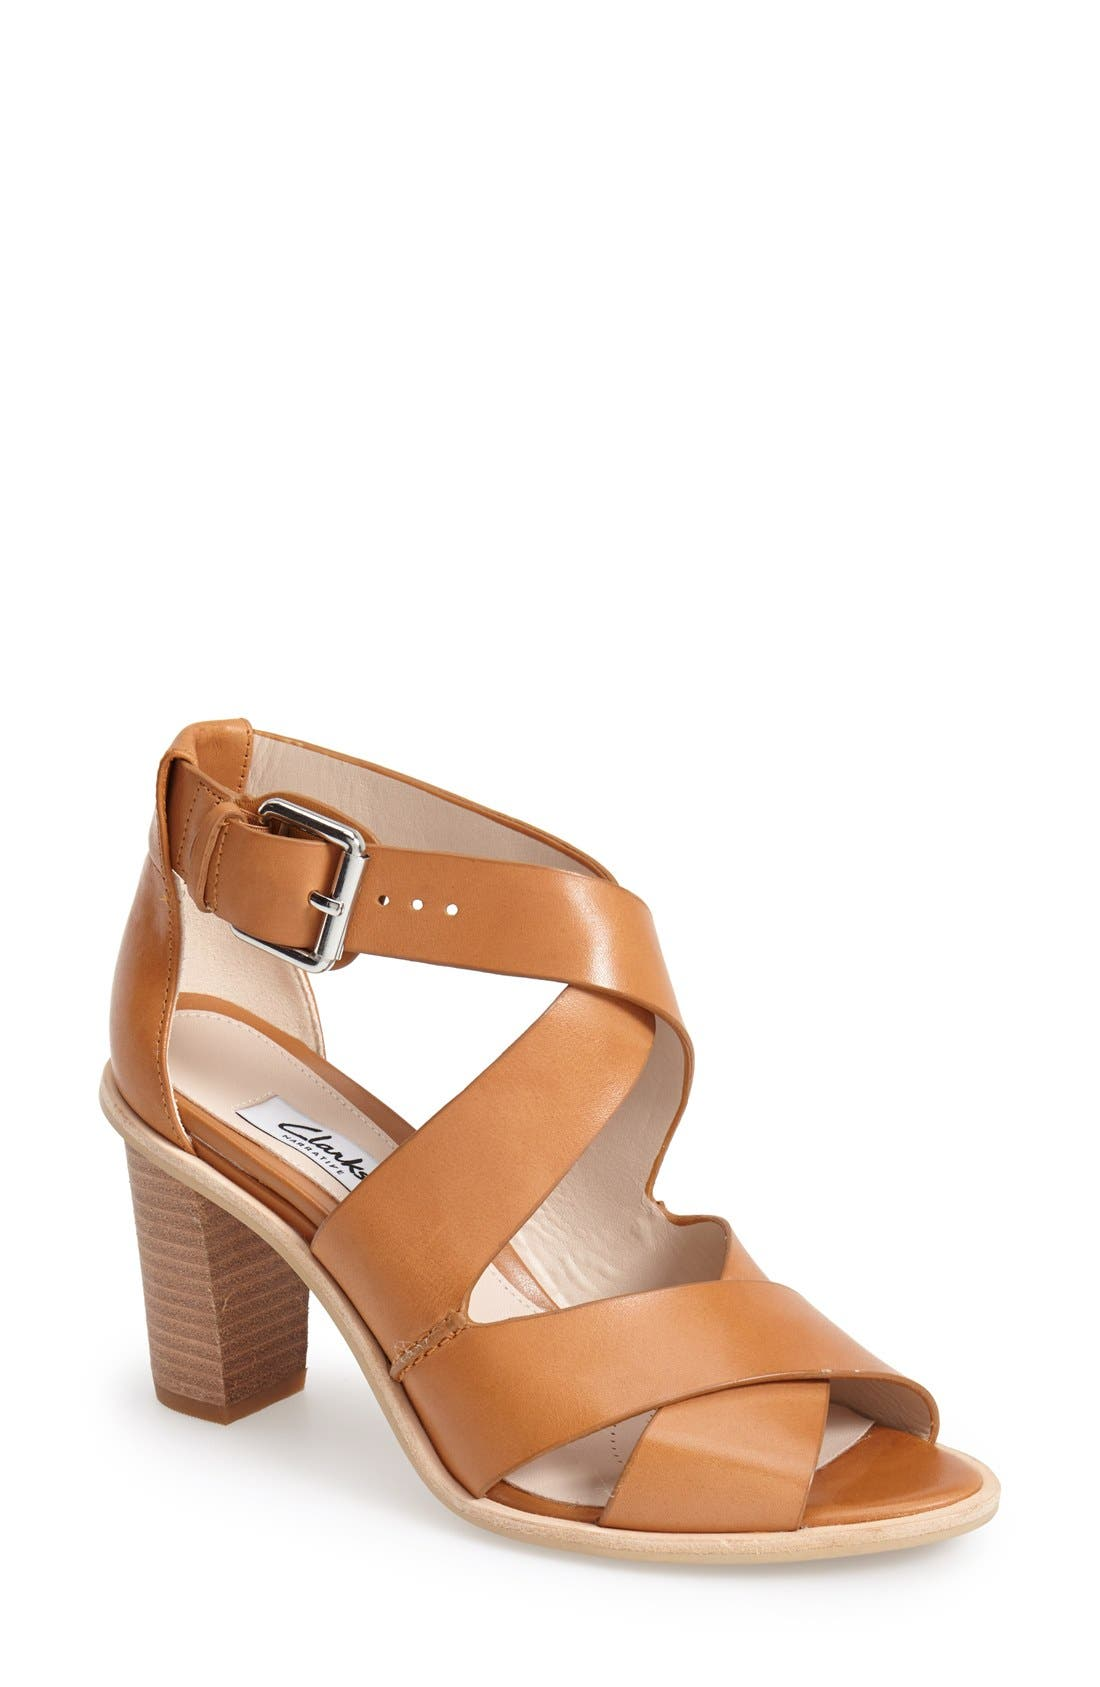 Main Image - Clarks® Narrative 'Oriana Bess' Sandal (Women)